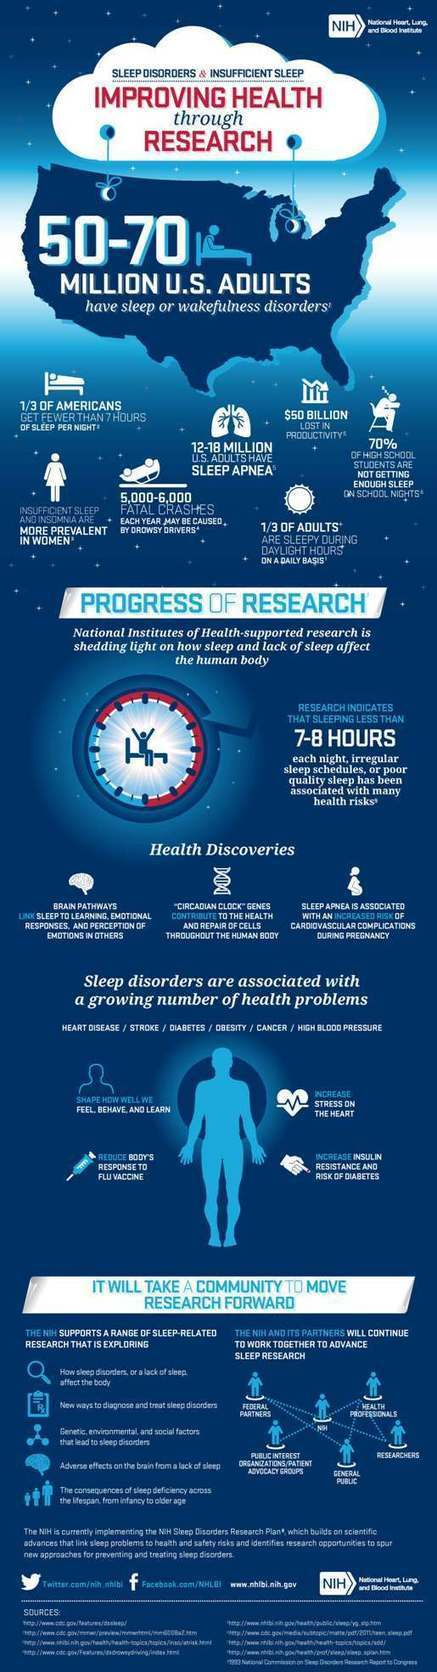 NIH Infographic: Research for Sleep Deprived Healthcare Marketers ... | Healthcare infographics | Scoop.it